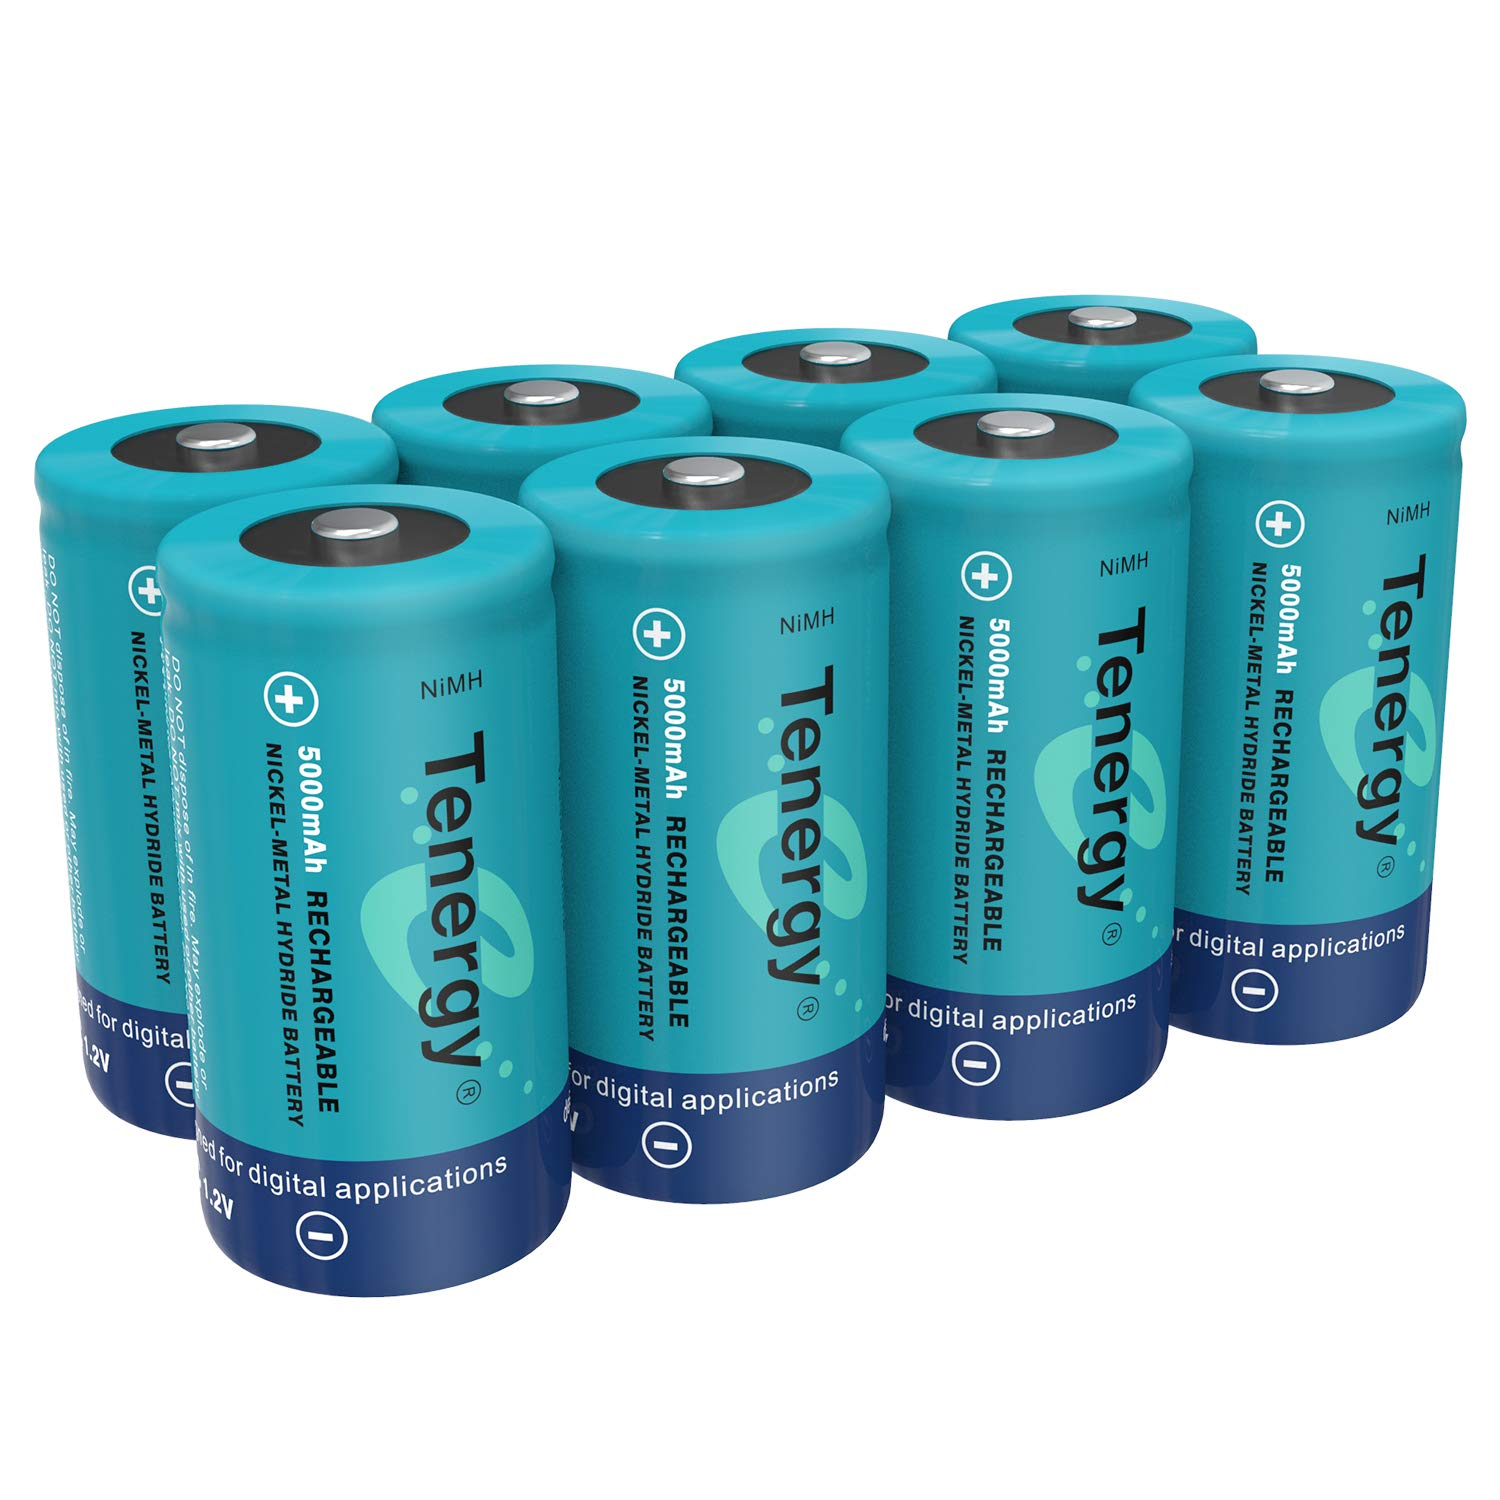 Tenergy C Size Battery 1.2V 5000mAh High Capacity NiMH Rechargeable Battery for LED Flashlights Kids Toy and More (8 pcs) by Tenergy